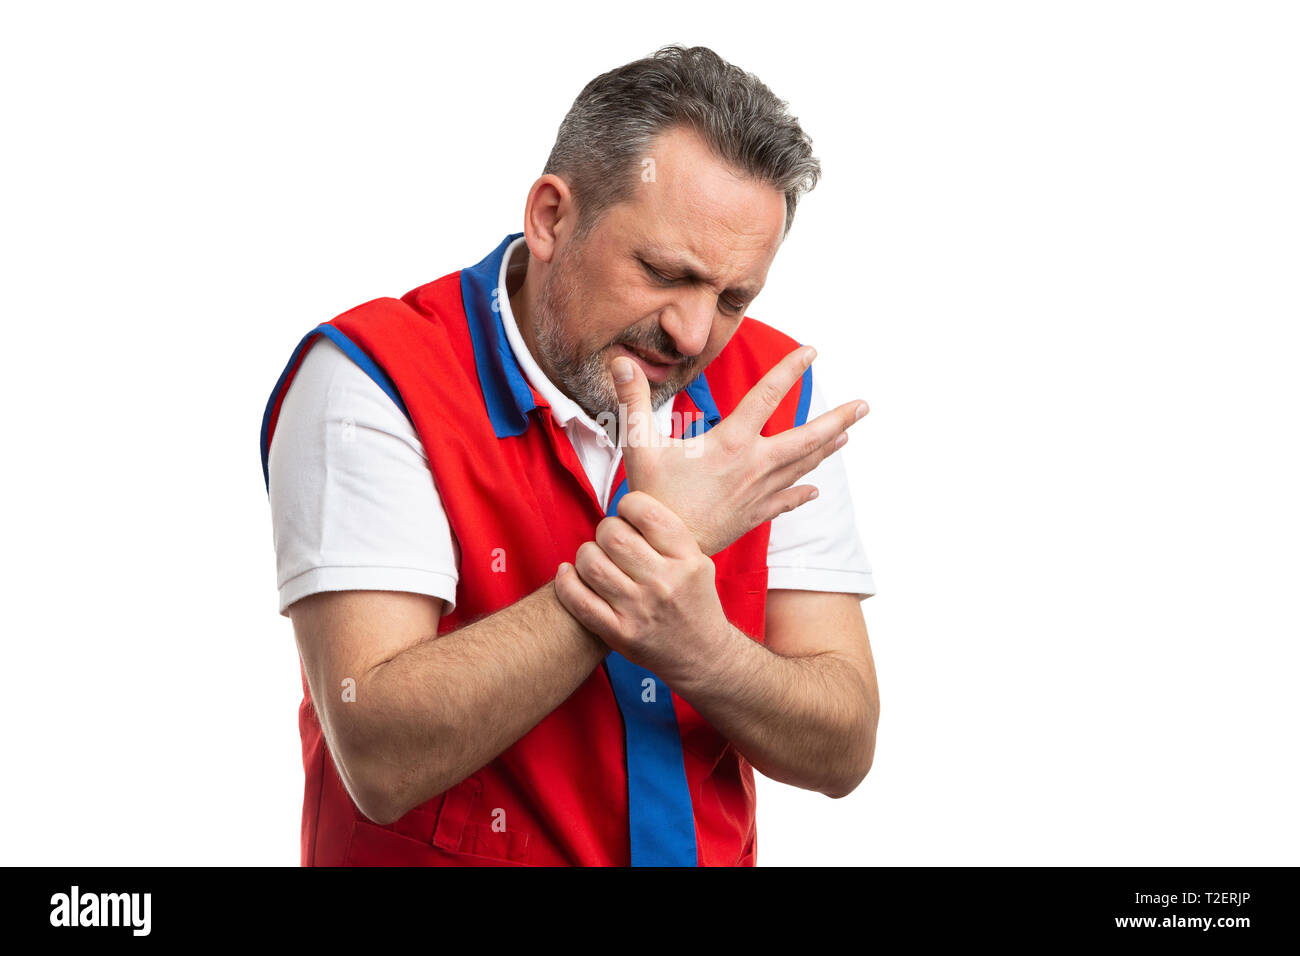 Male hypermarket or supermarket employee with painful expression holding sprained wrist as physical effort concept isolated on white - Stock Image